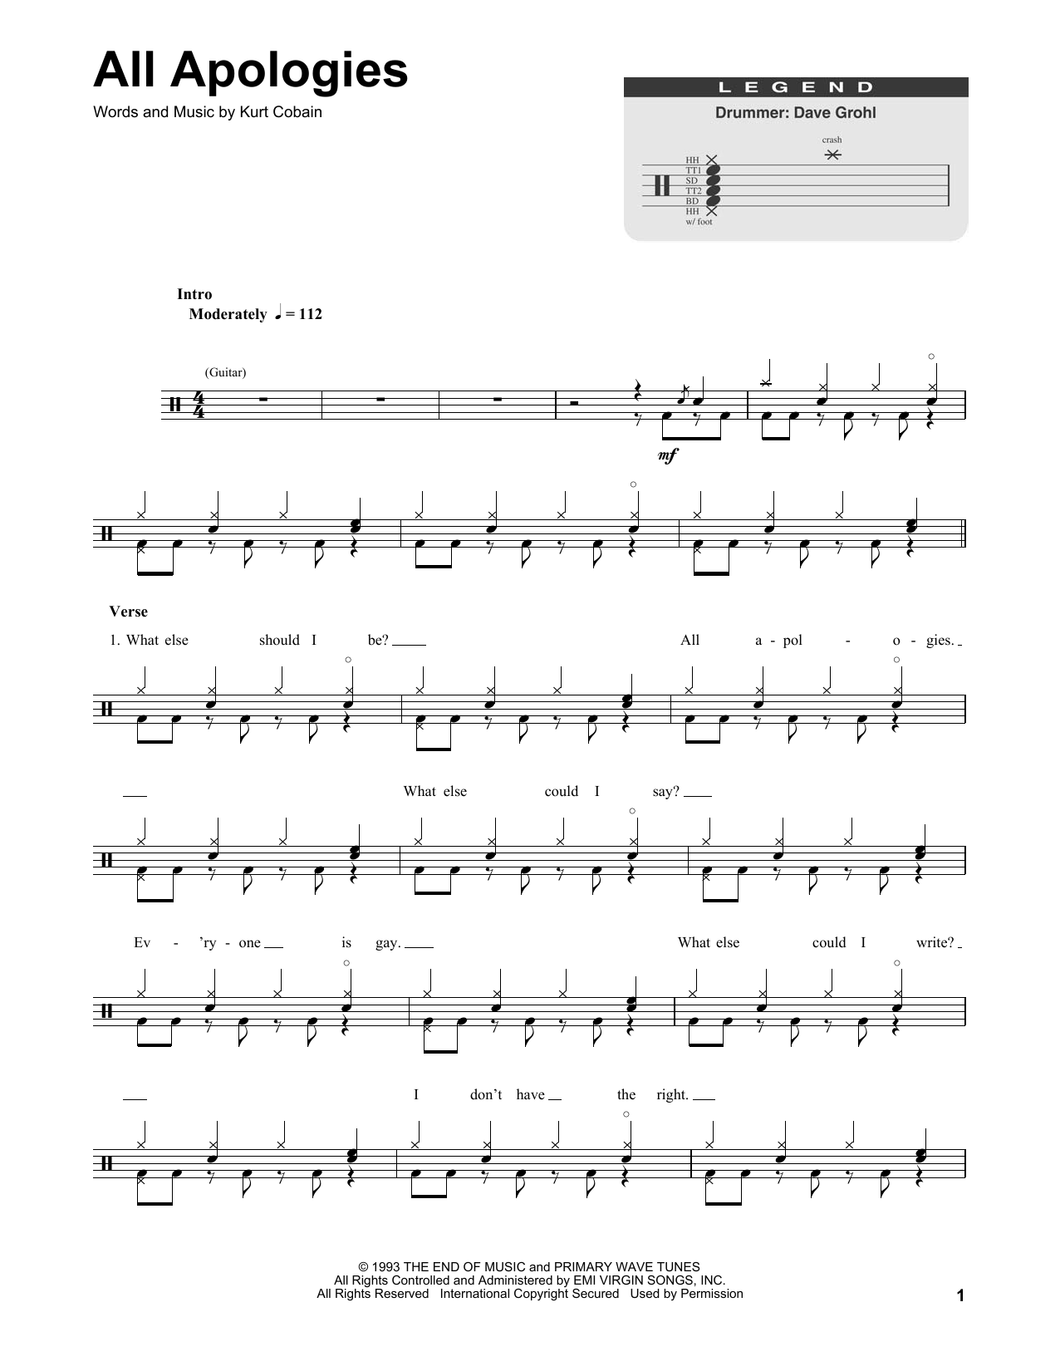 All Apologies - Nirvana - Full Drum Transcription / Drum Sheet Music - SheetMusicDirect DT